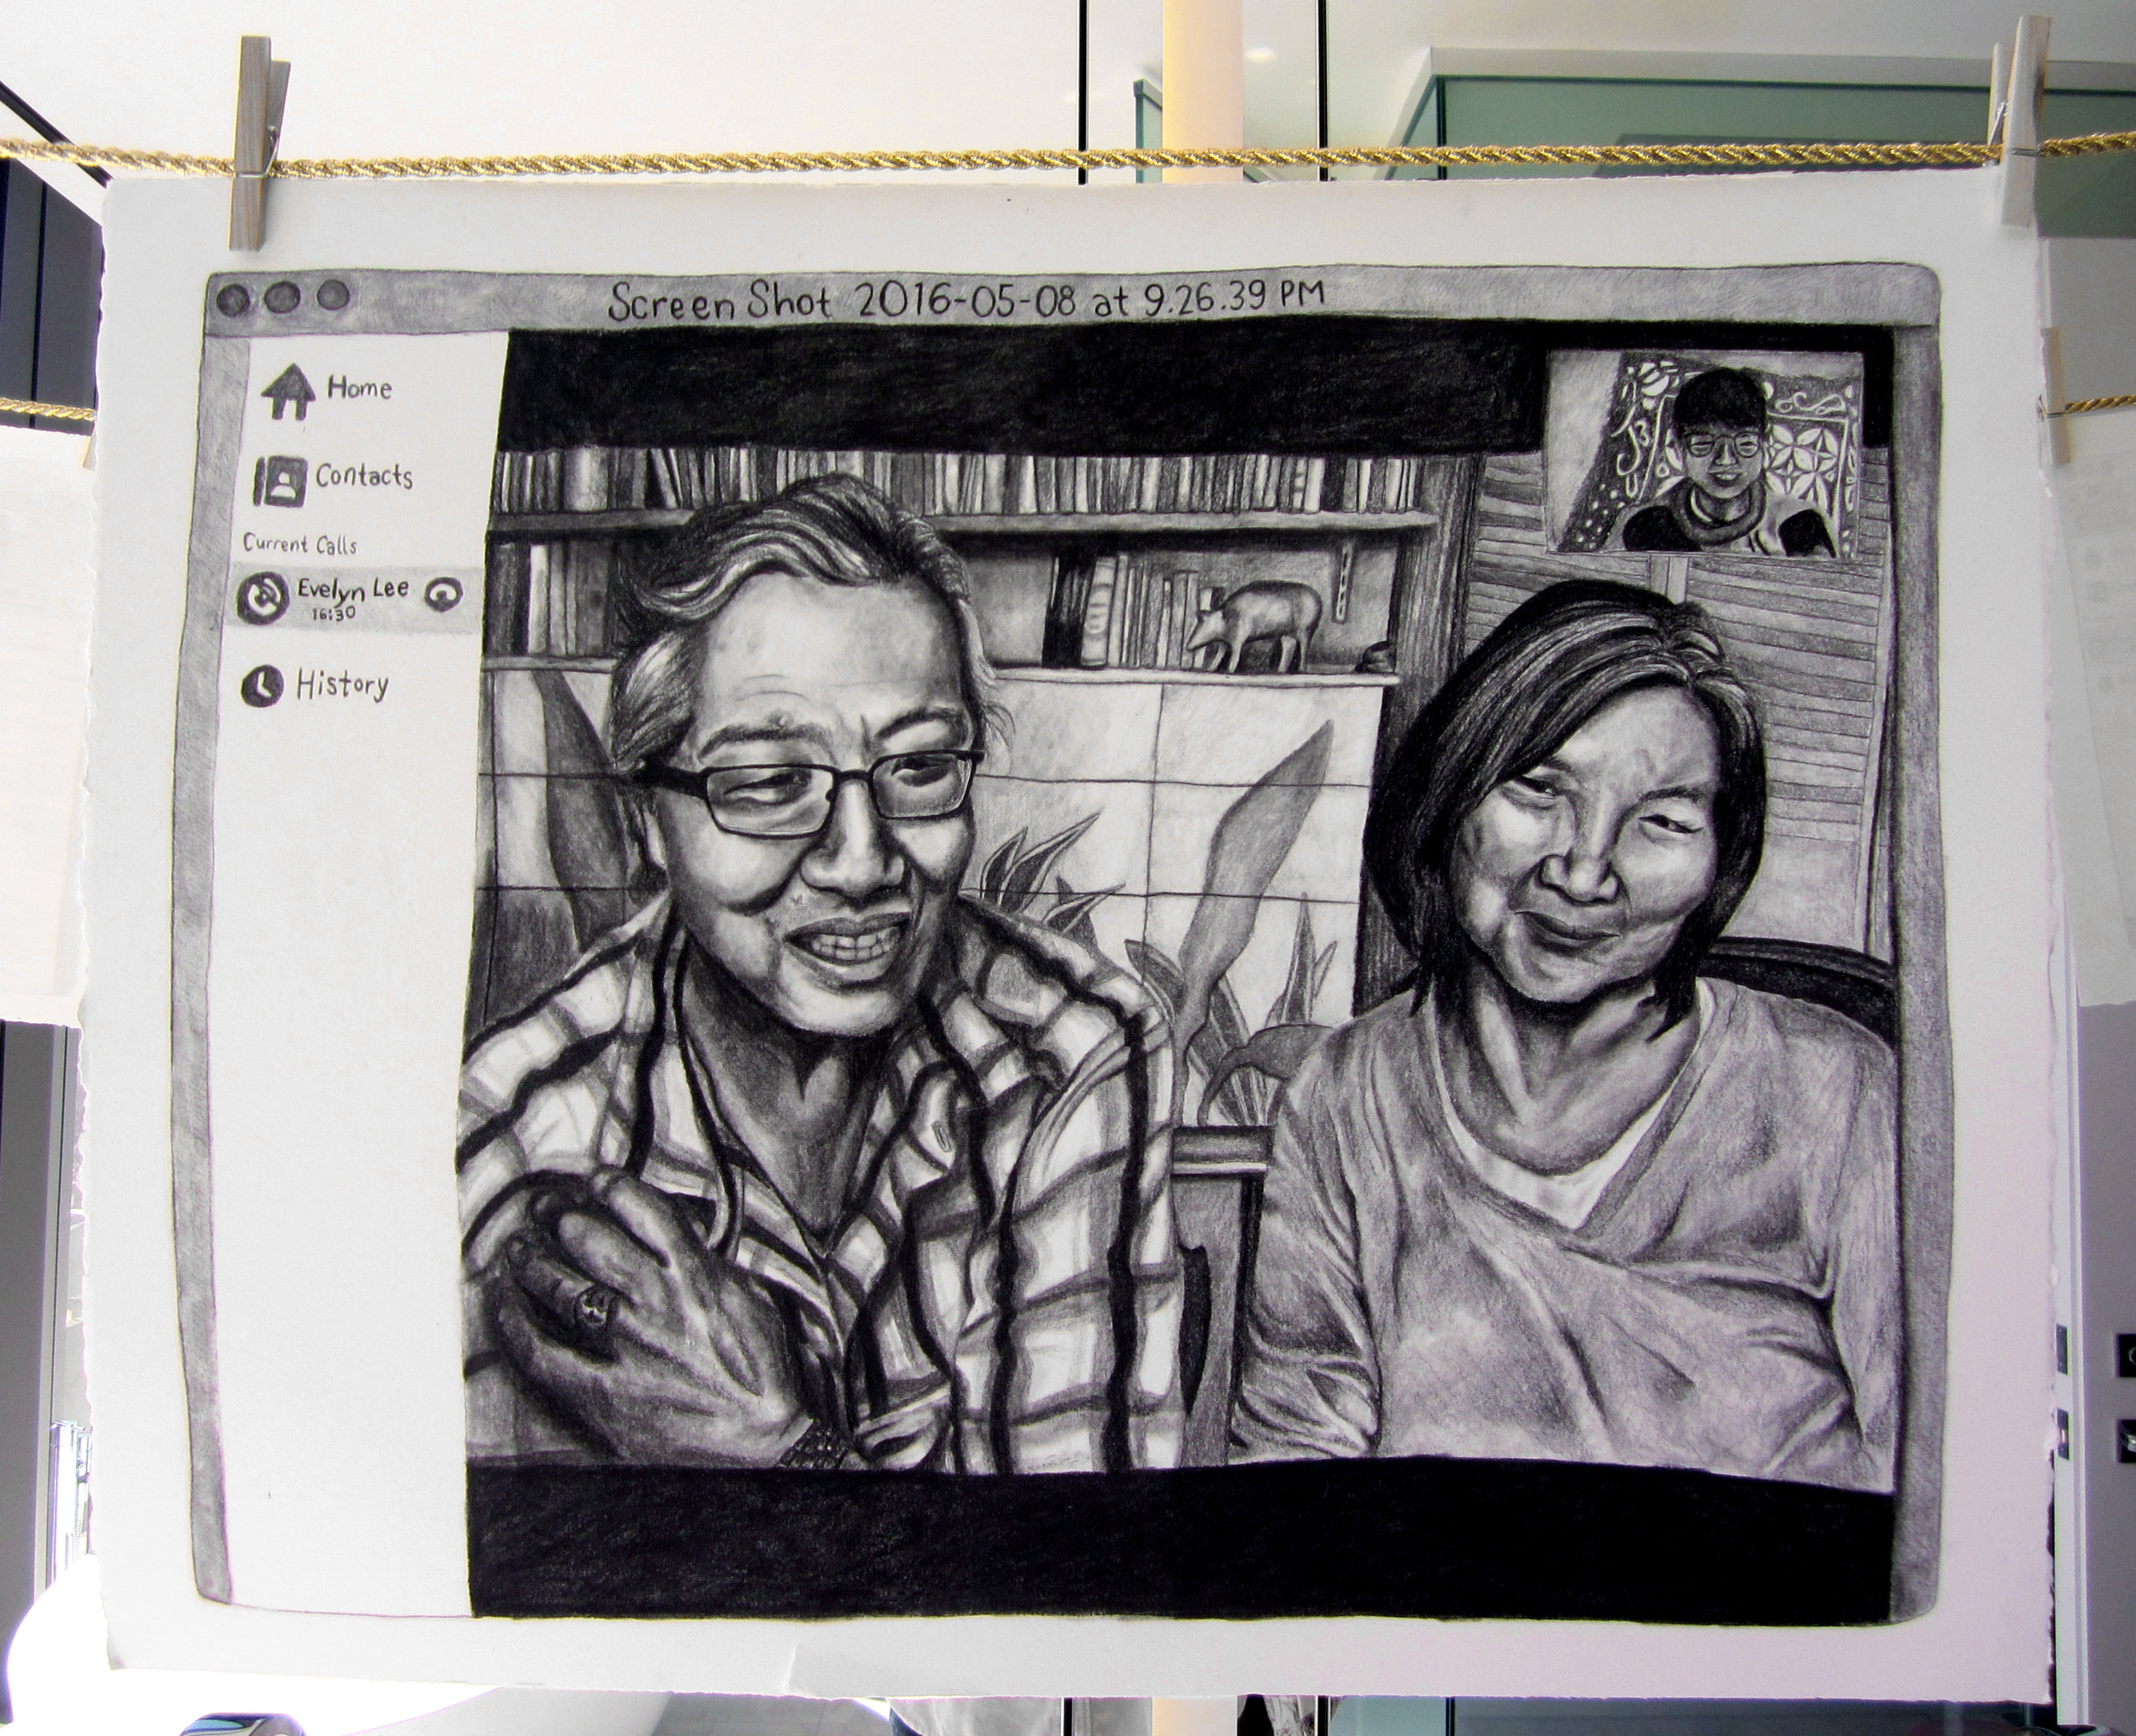 Screenshot 2016-05-08 at 9.26.39 PM (Mom and Dad), 2017  charcoal on paper, wooden clothes pins and cord  20 x 24 1/2 inches